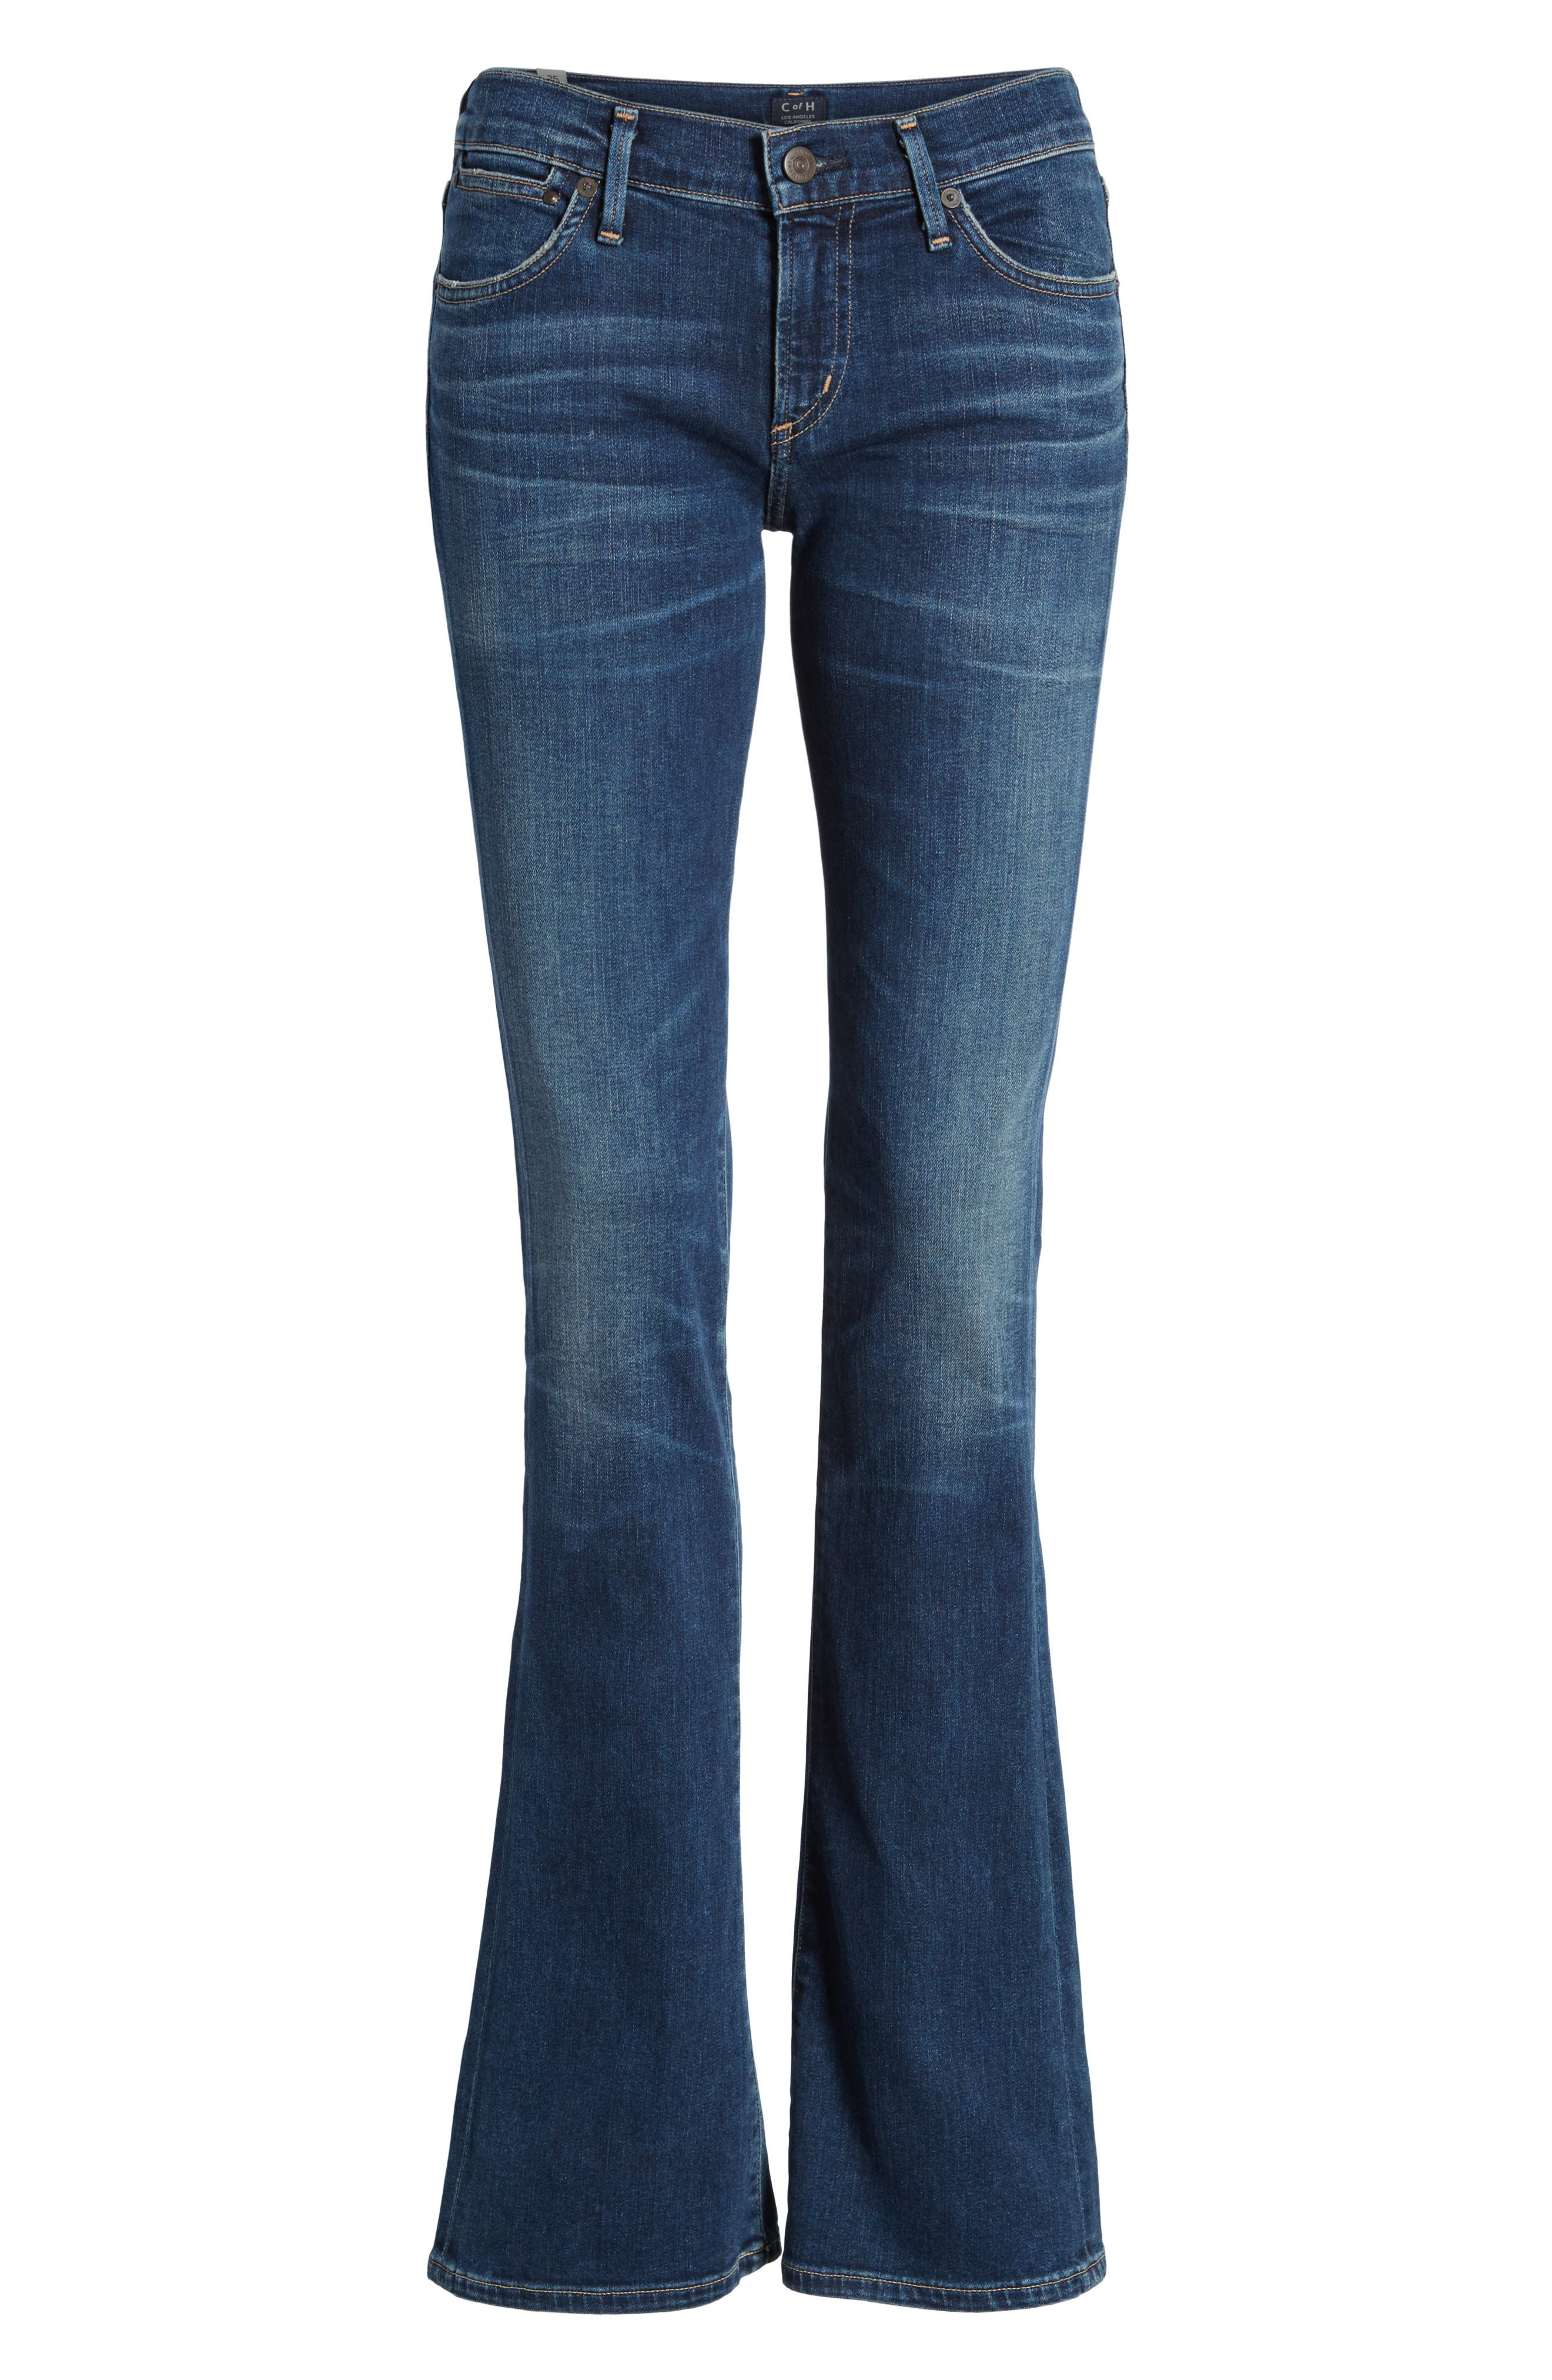 CITIZENS OF HUMANITY,                             'Emannuelle' Slim Bootcut Jeans,                             Alternate thumbnail 2, color,                             MODERN LOVE